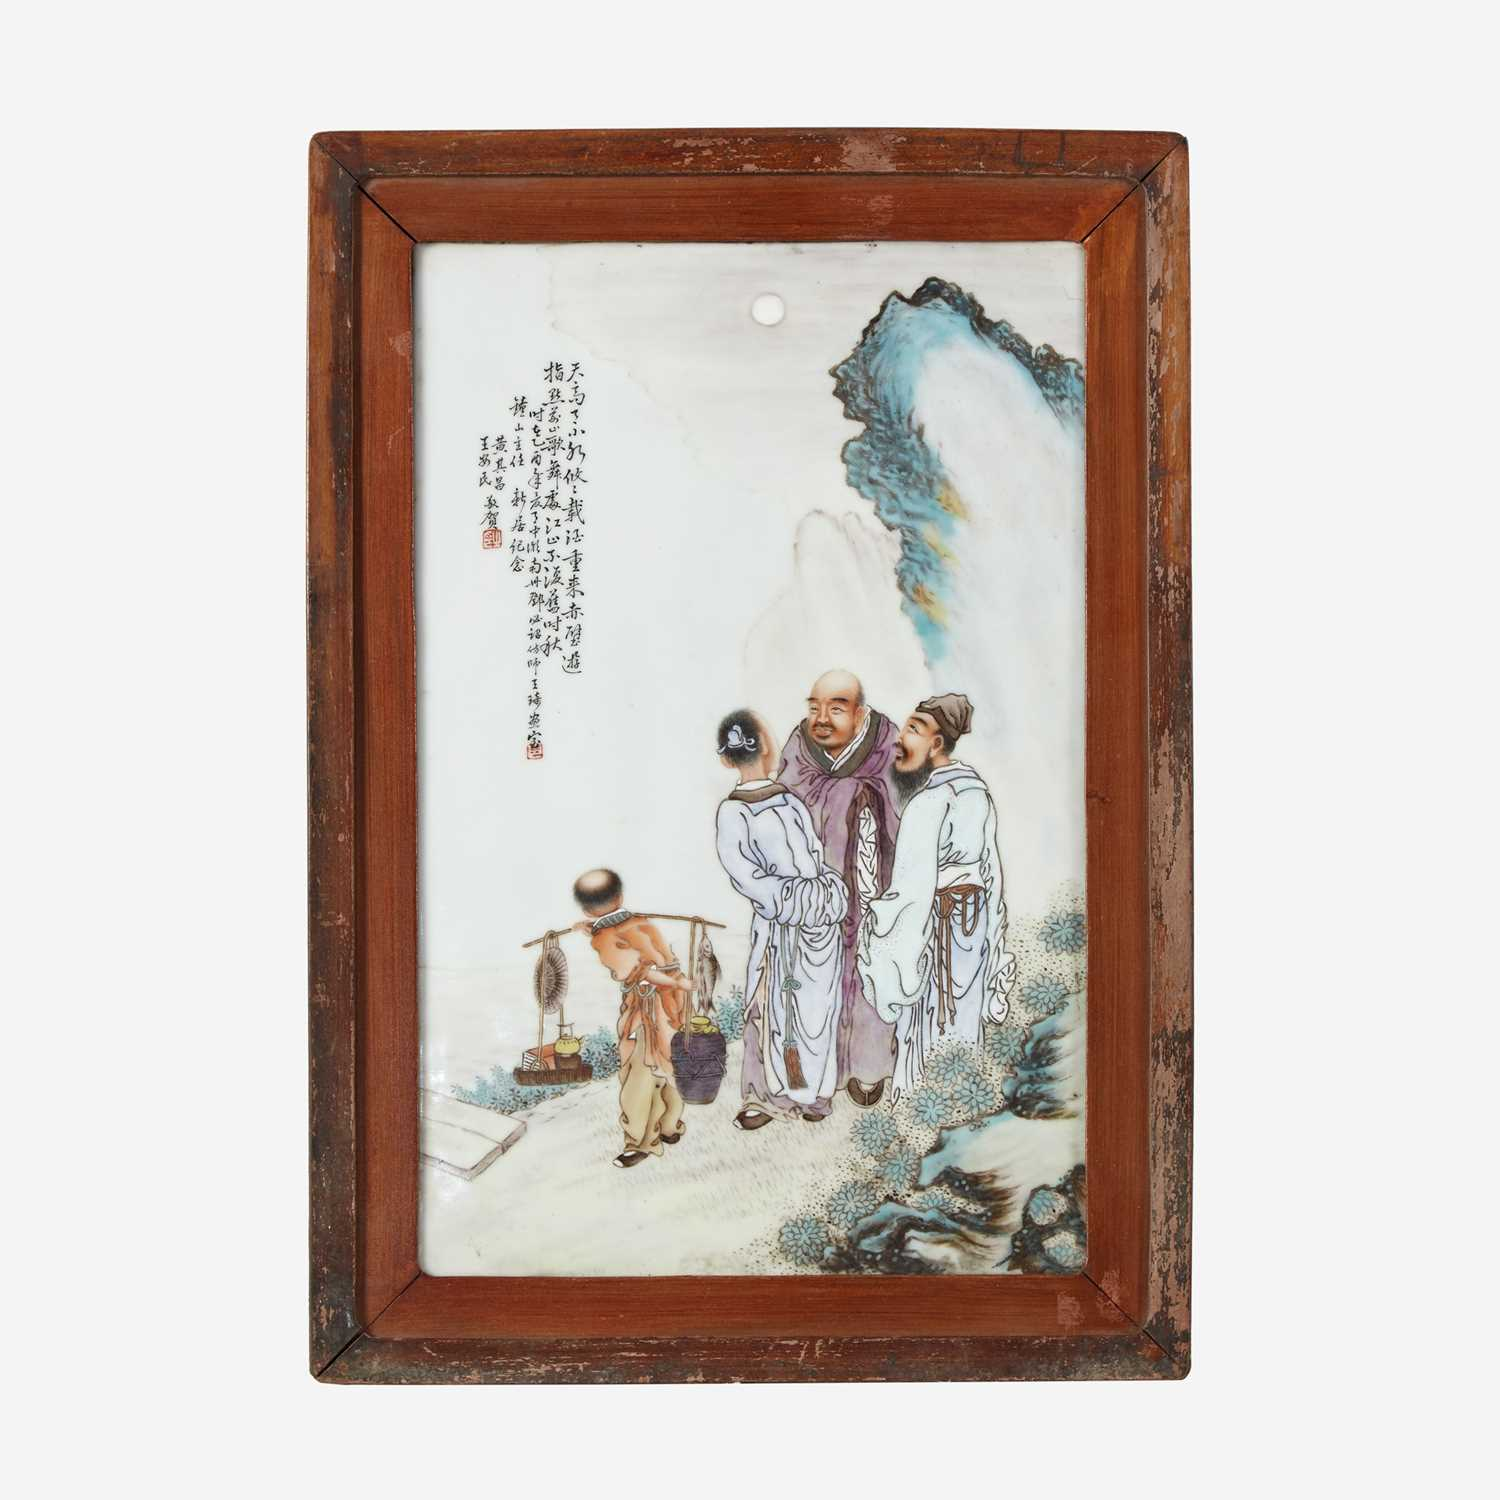 Lot 20 - A Chinese enameled porcelain plaque